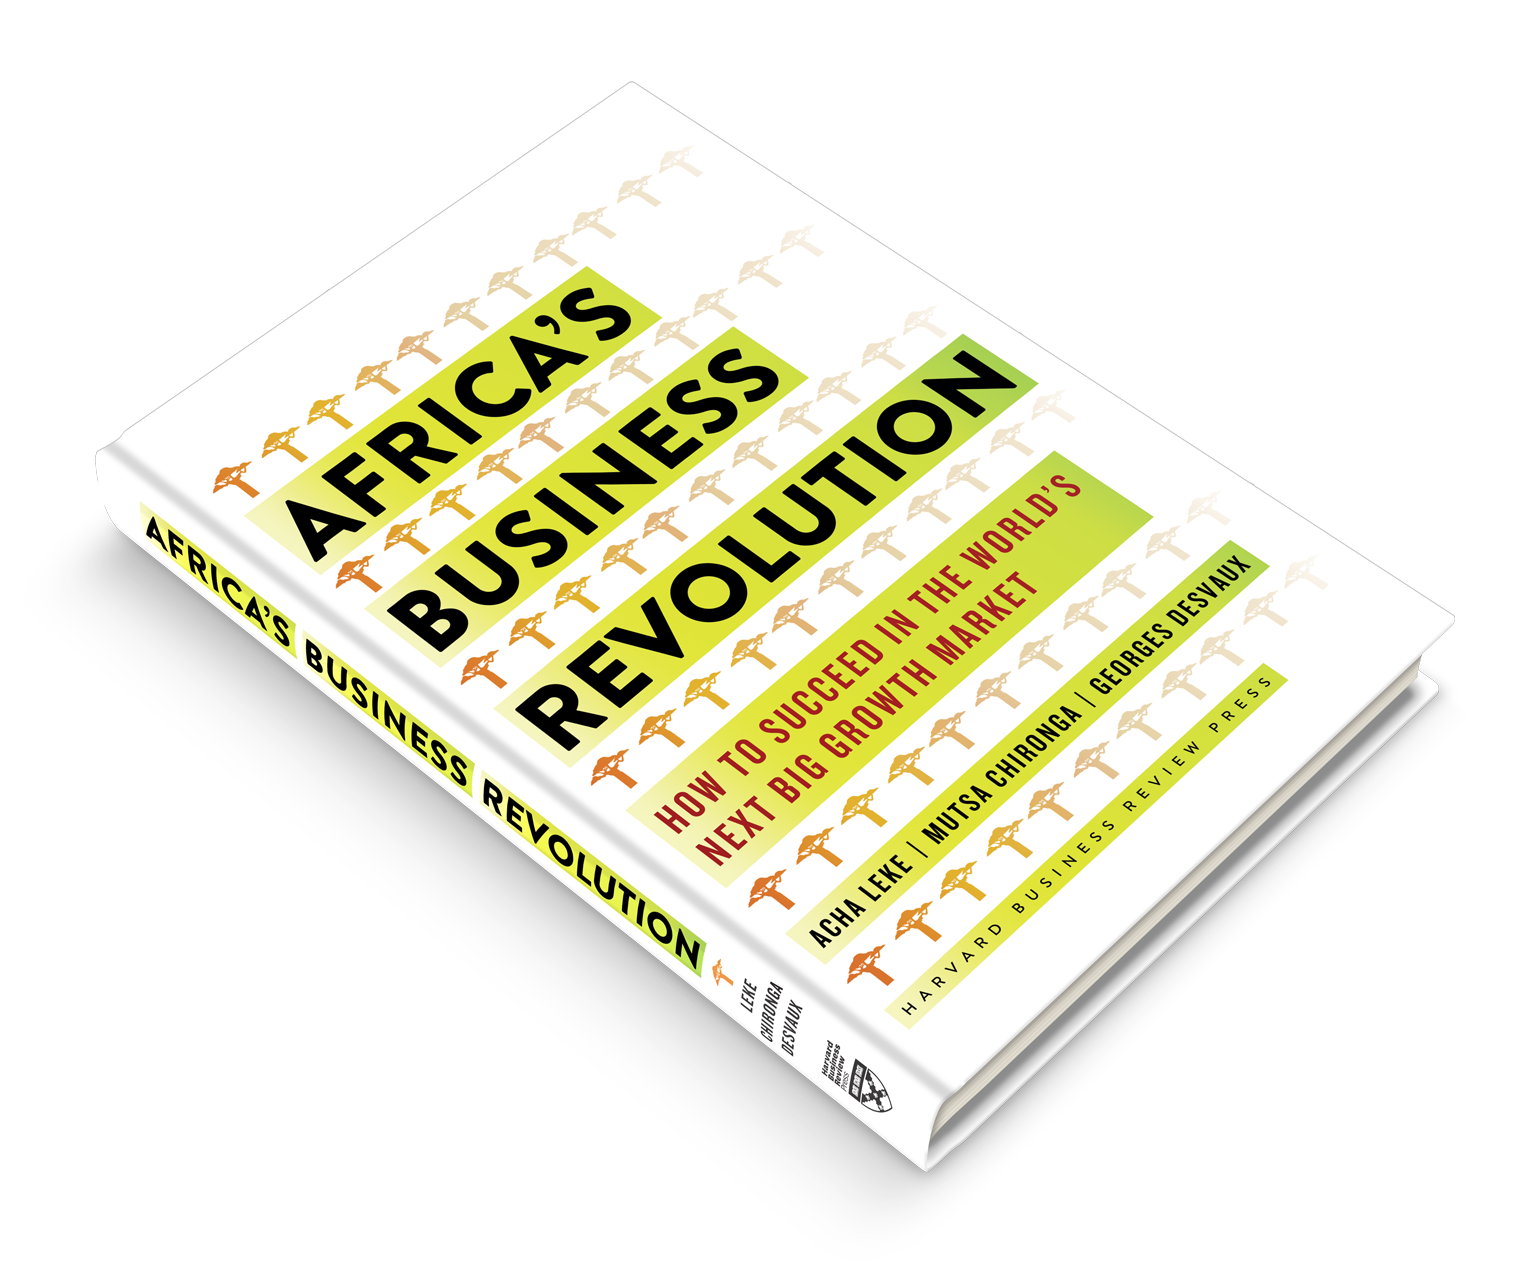 africa s business revolution how to succeed in the world s next big